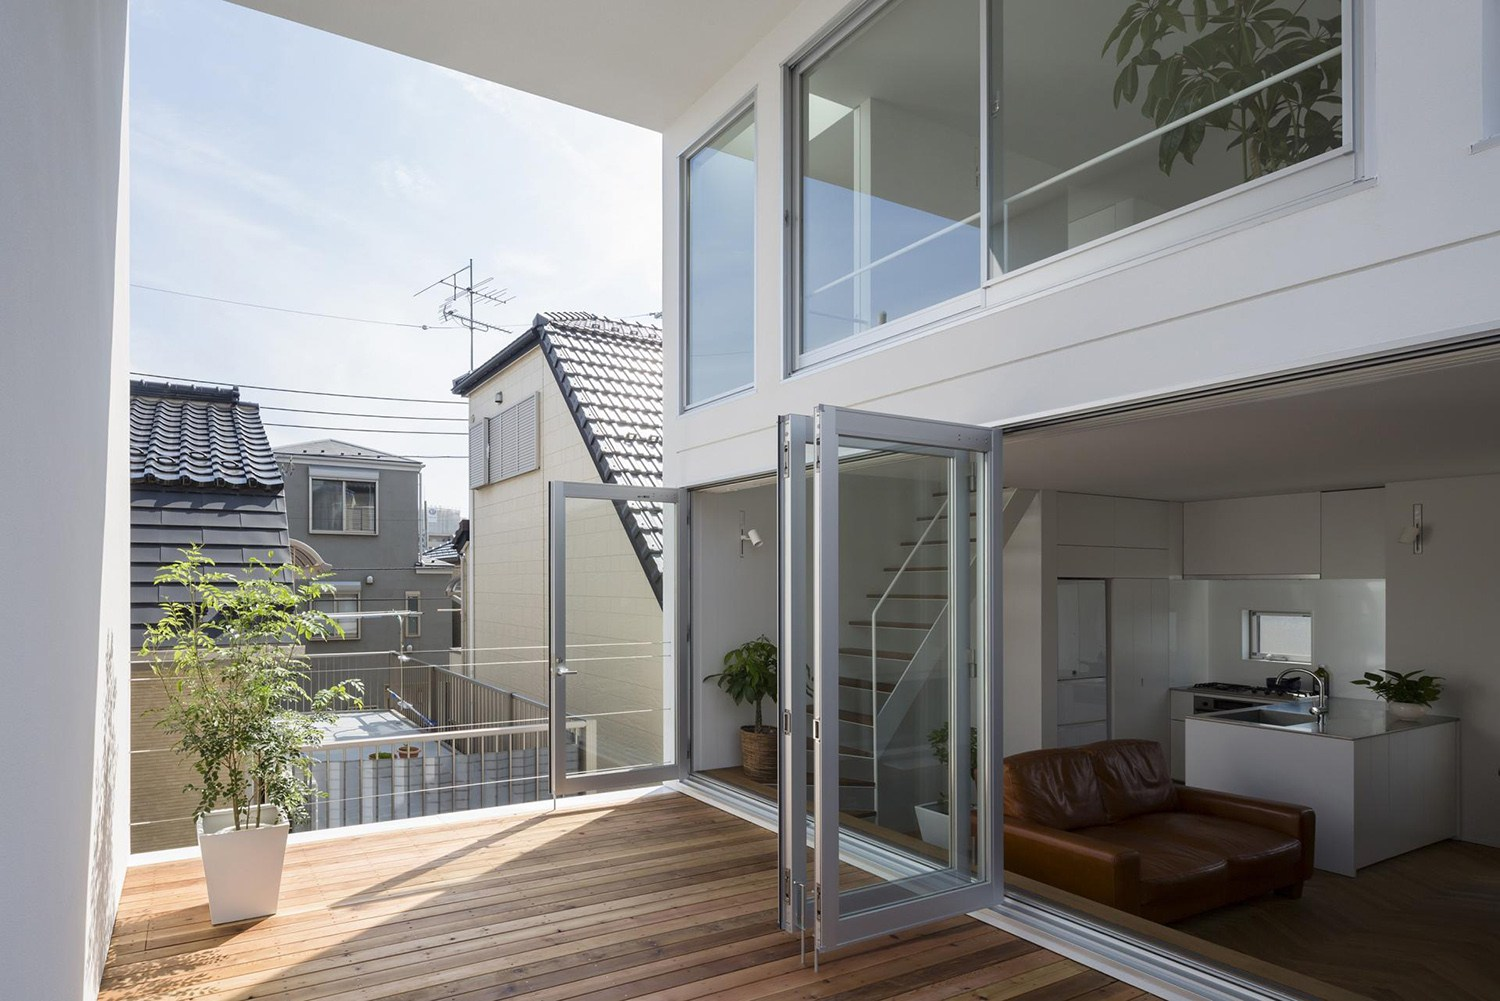 little-house-with-a-big-terrace-by-takuro-yamamoto-4